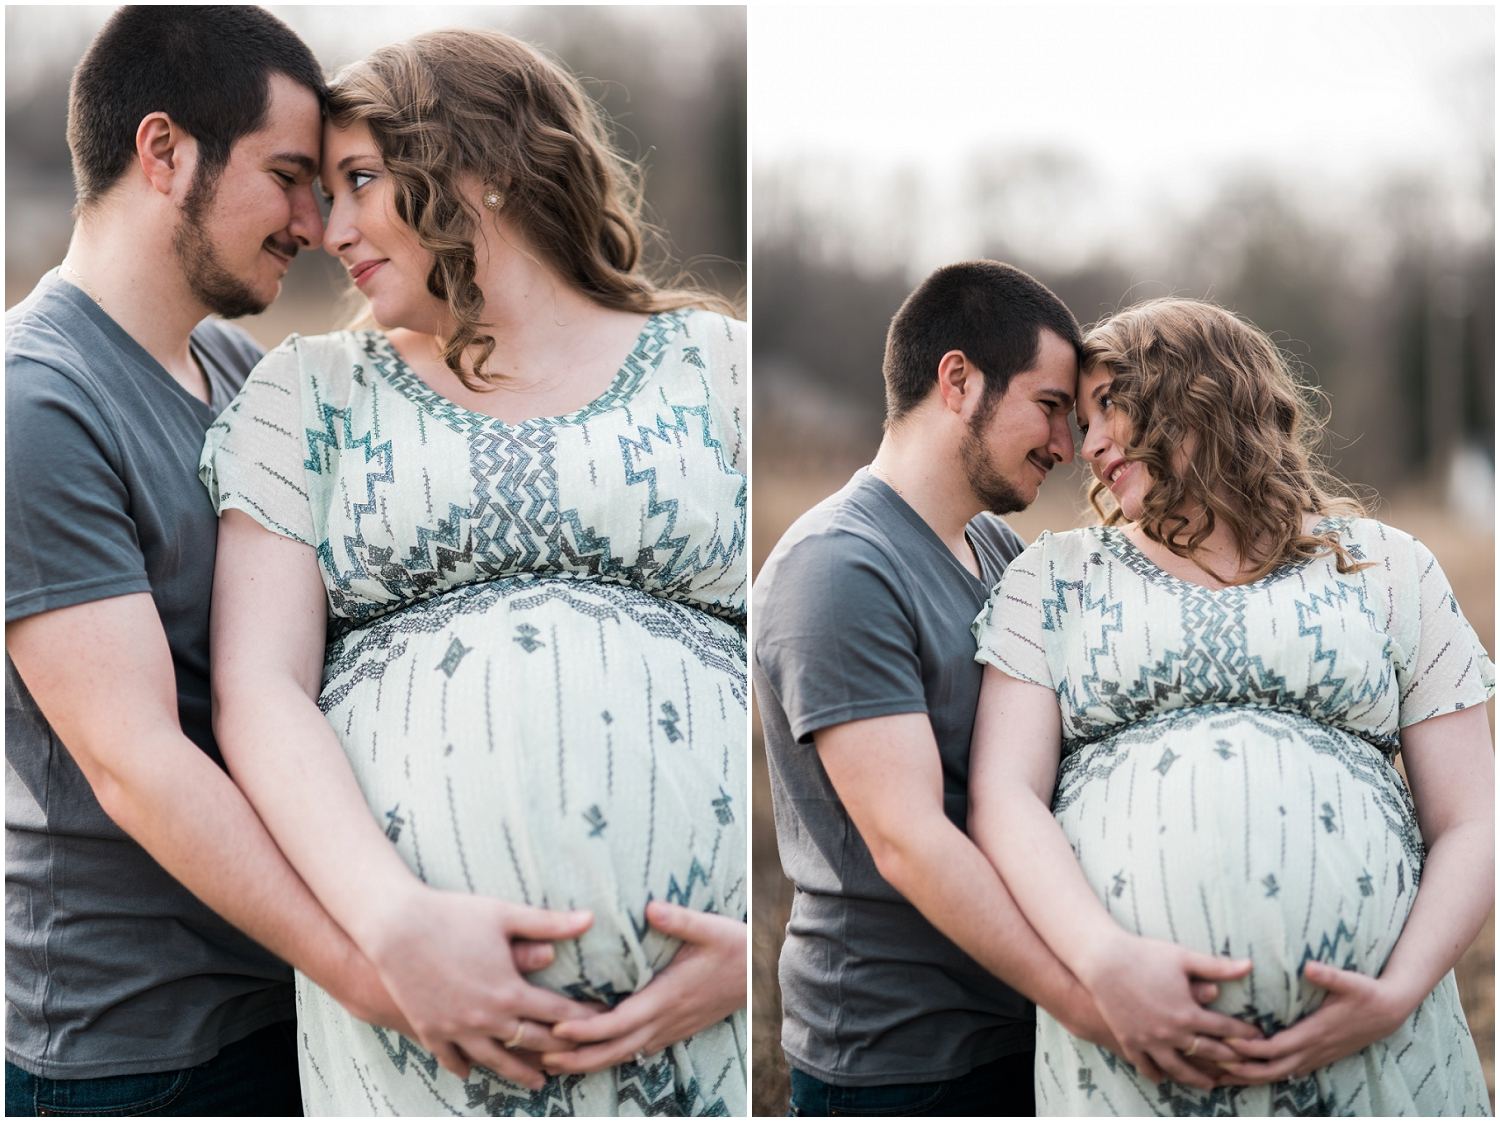 Dayton Maternity Photographer | Chelsea Hall Photography | www.chelsea-hall.com